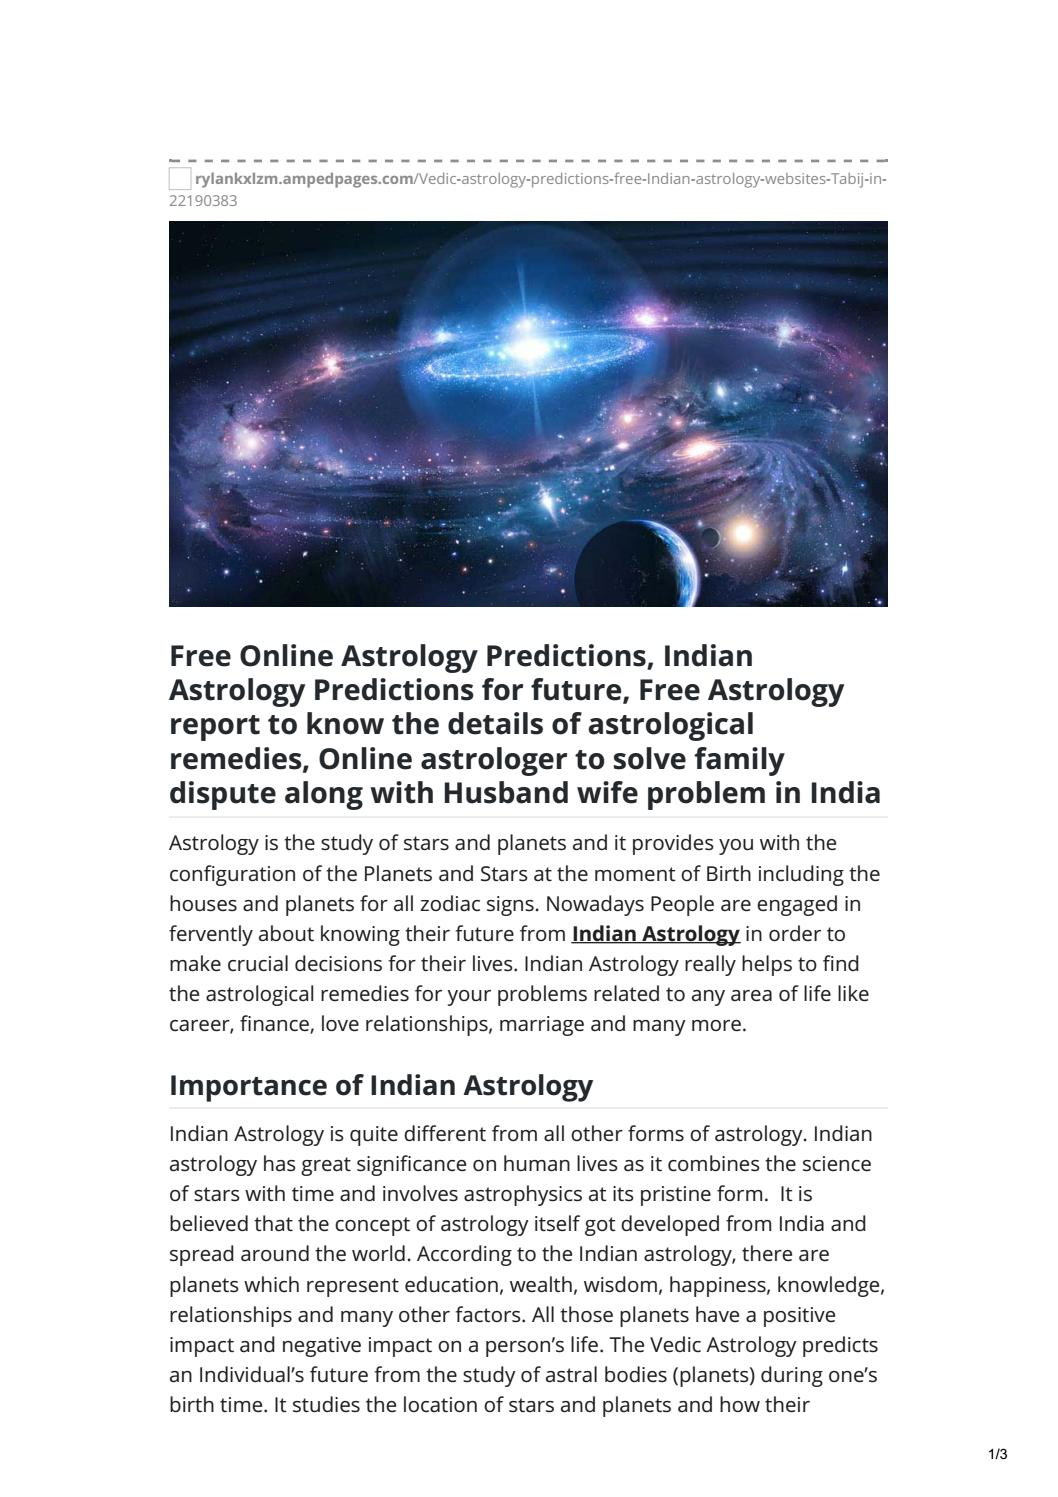 Know how Indian Astrology Websites work- Tabij in by Lipsa